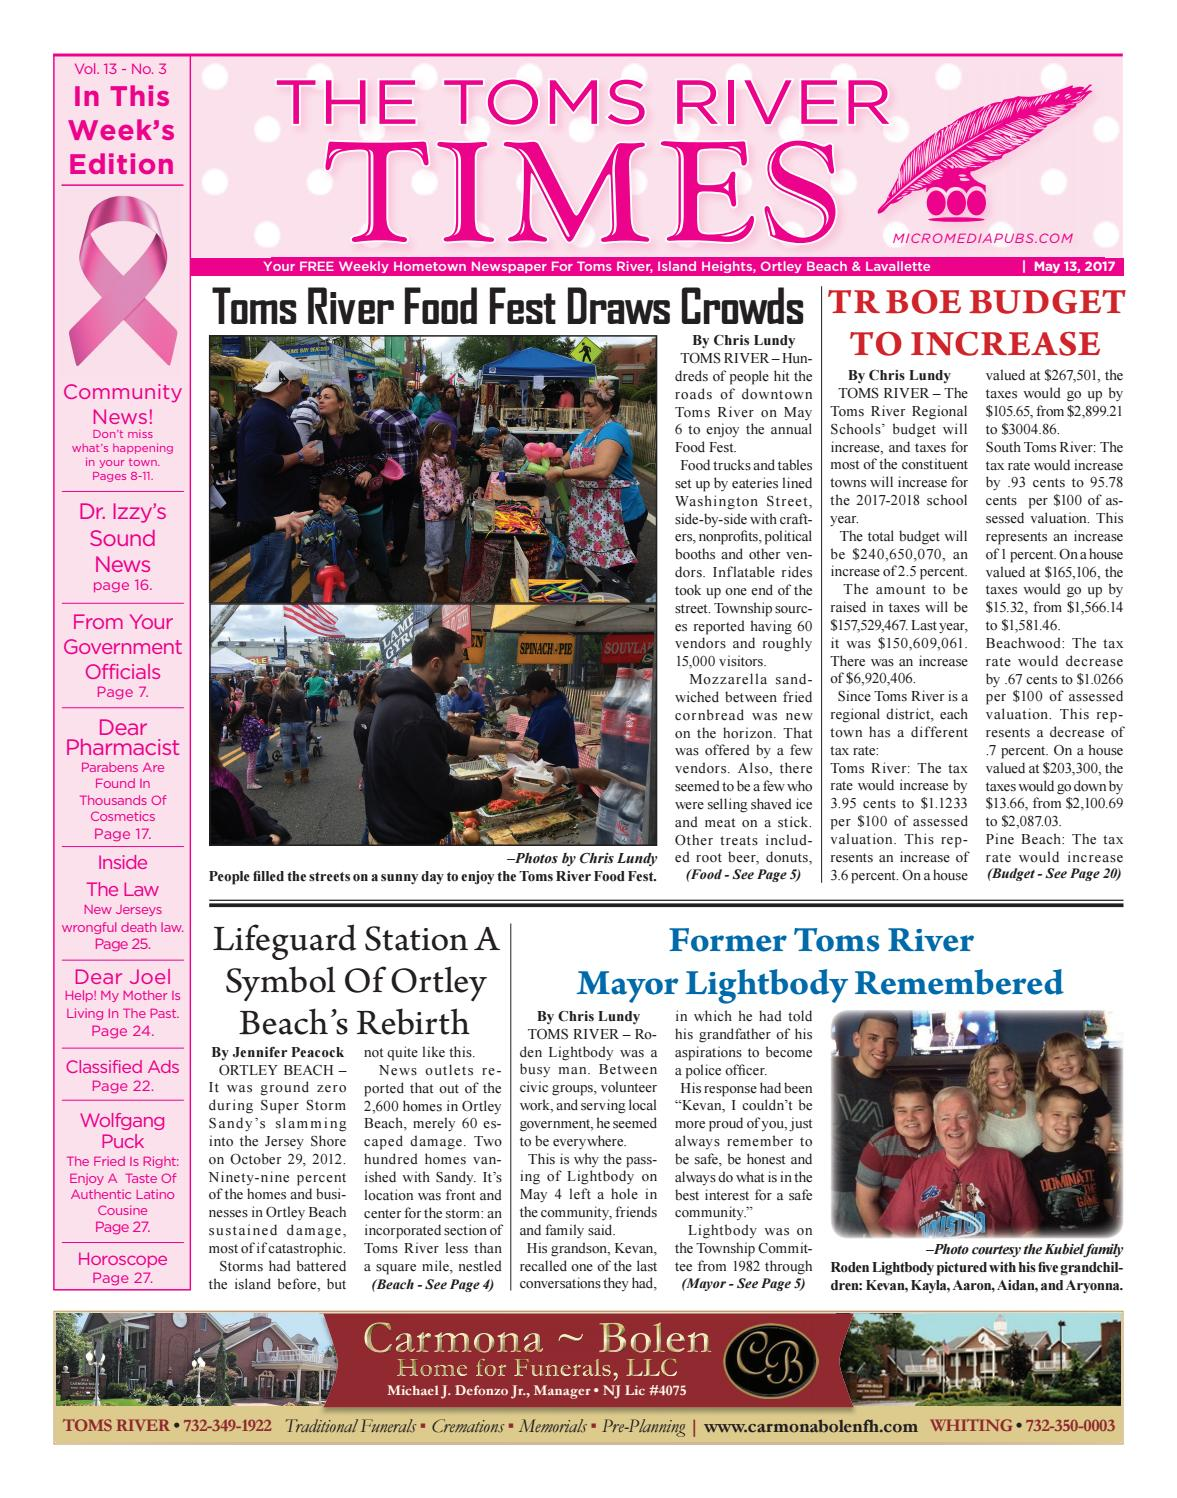 2017-05-13 - The Toms River Times by Micromedia Publications/Jersey Shore  Online - issuu